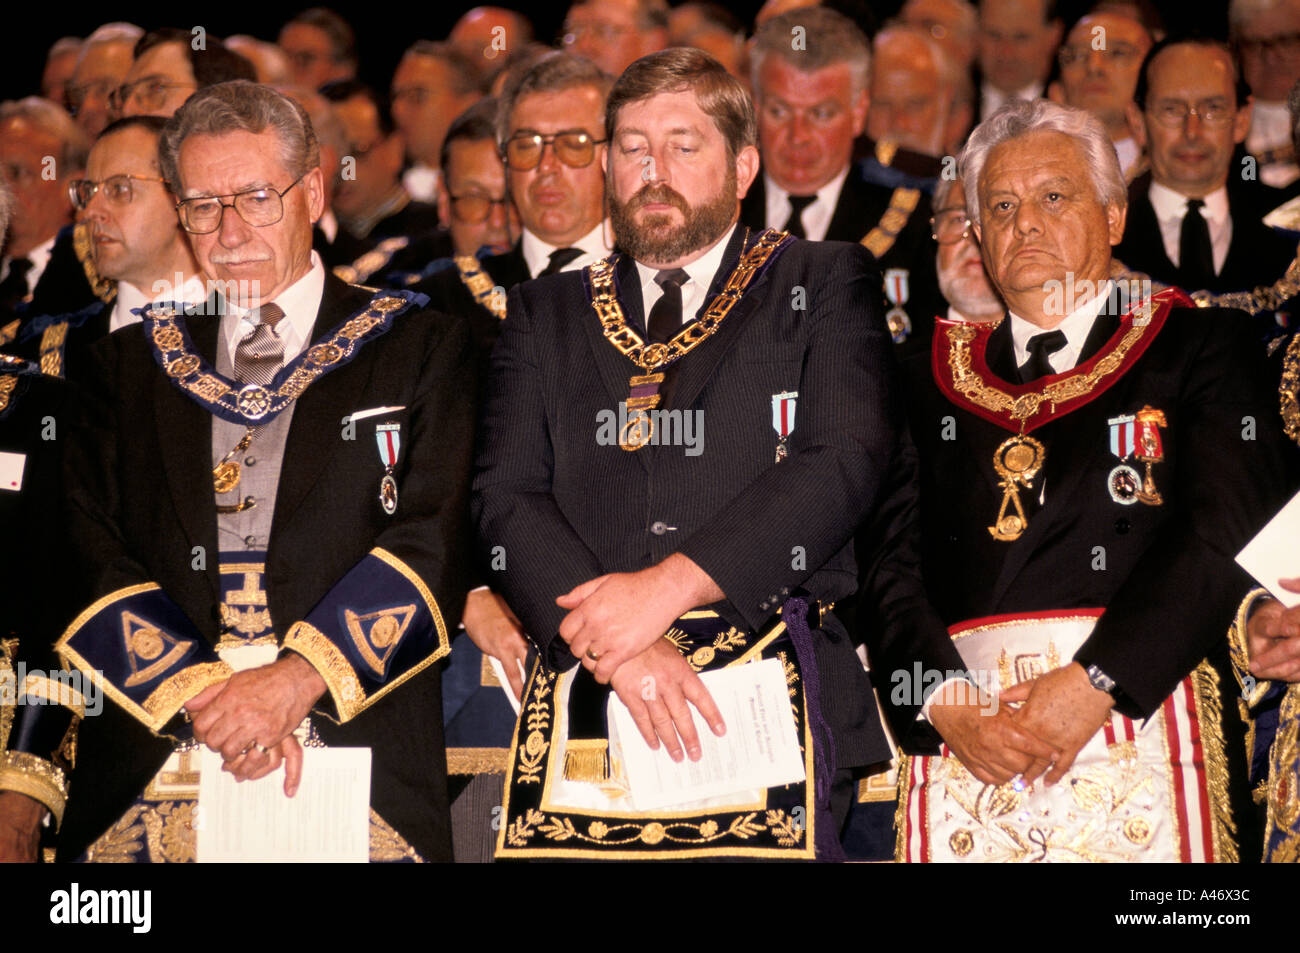 Freemasons at Earls Court Arena in London UK for a mass gathering - Stock Image